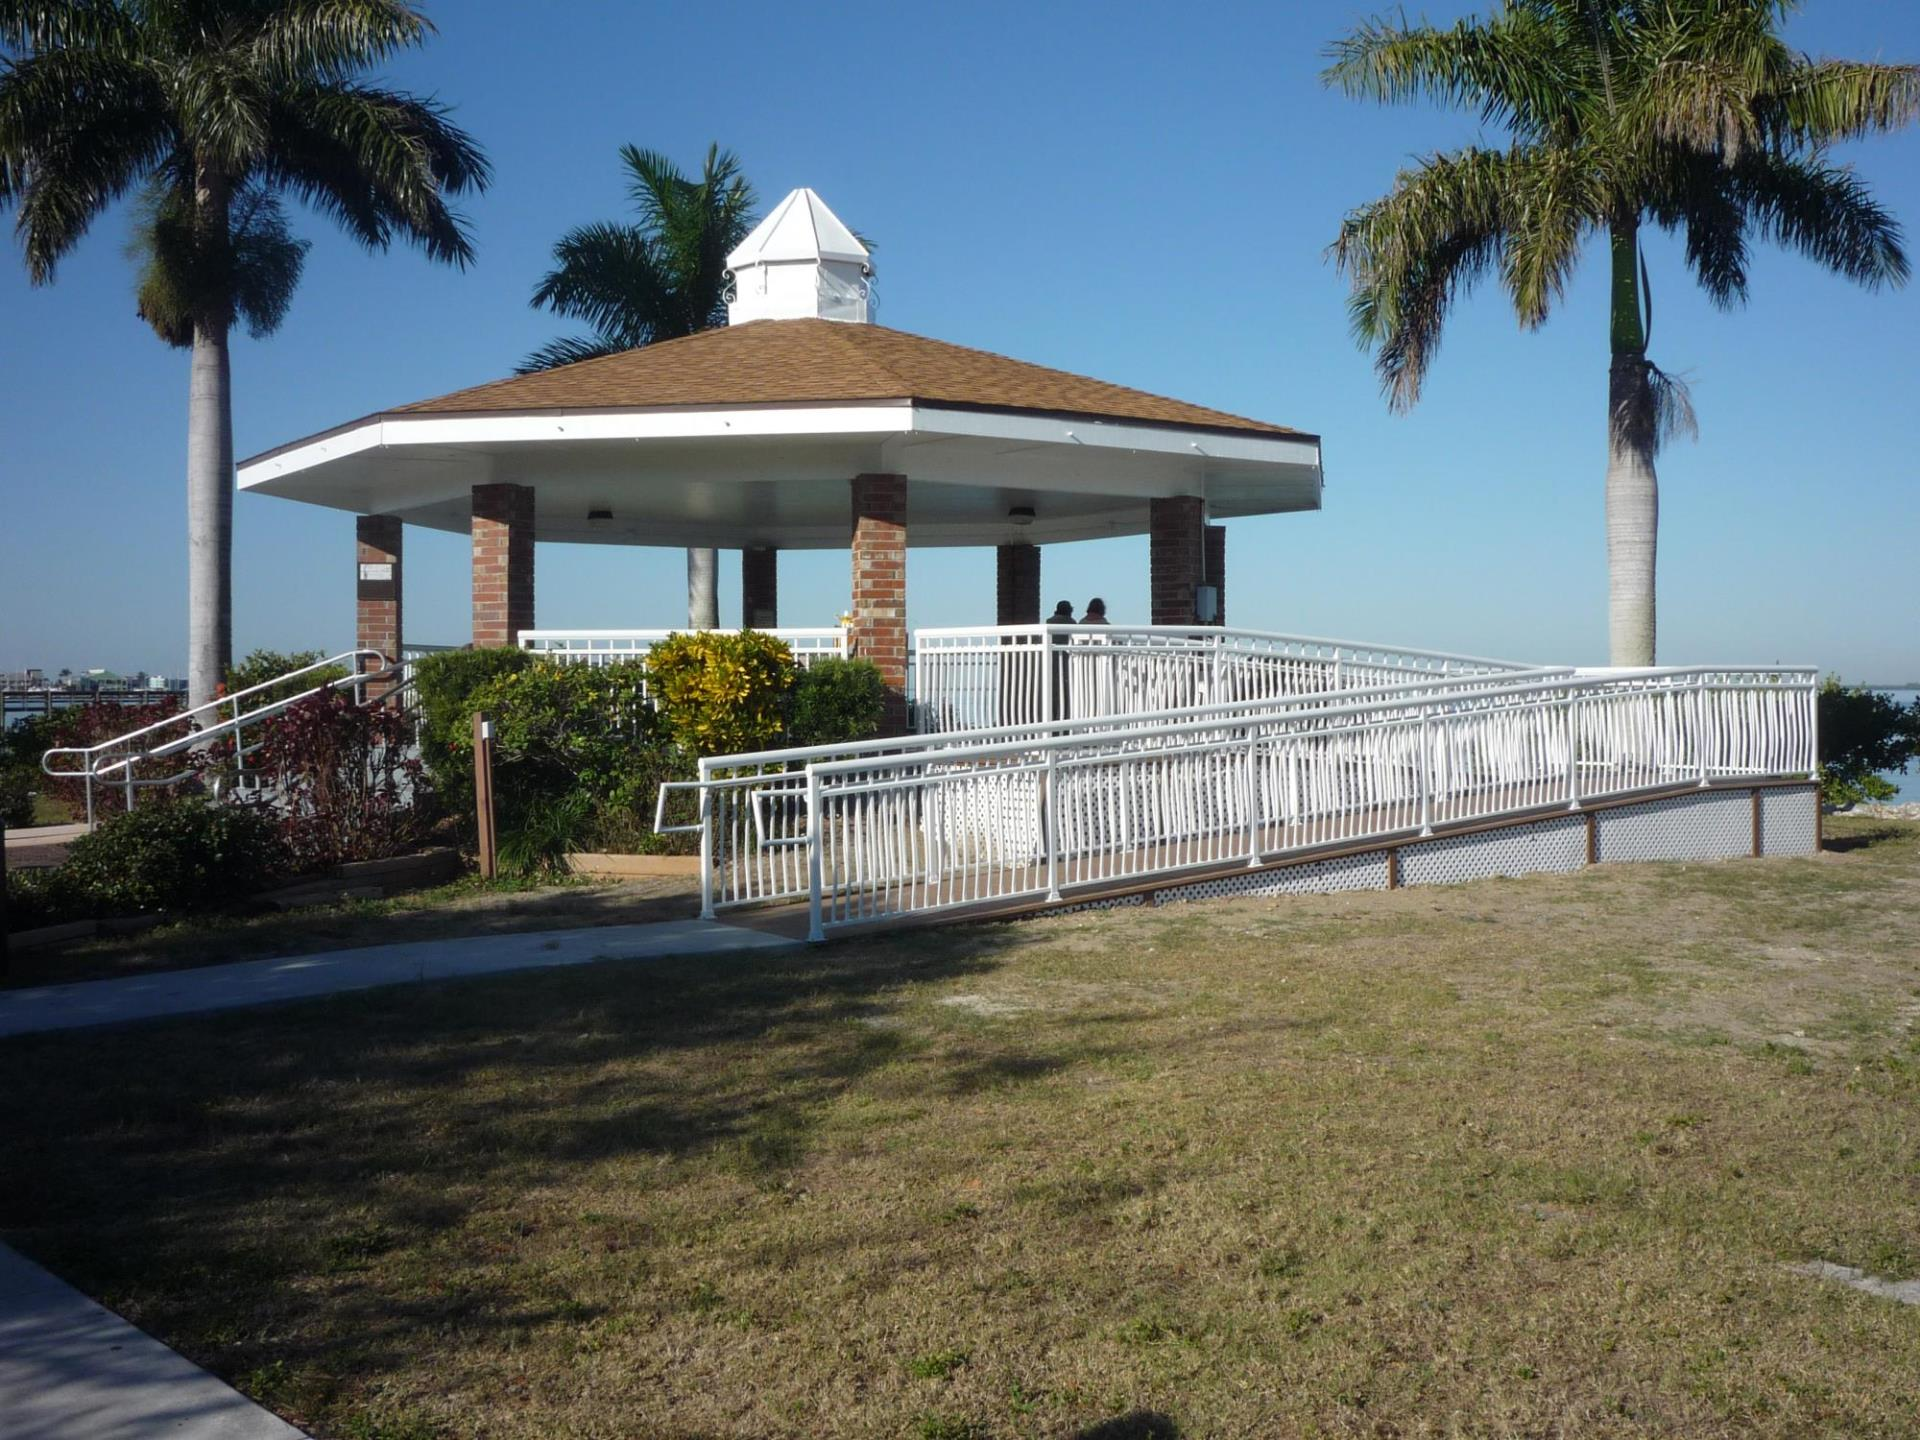 gazebo with people in it along the harbor